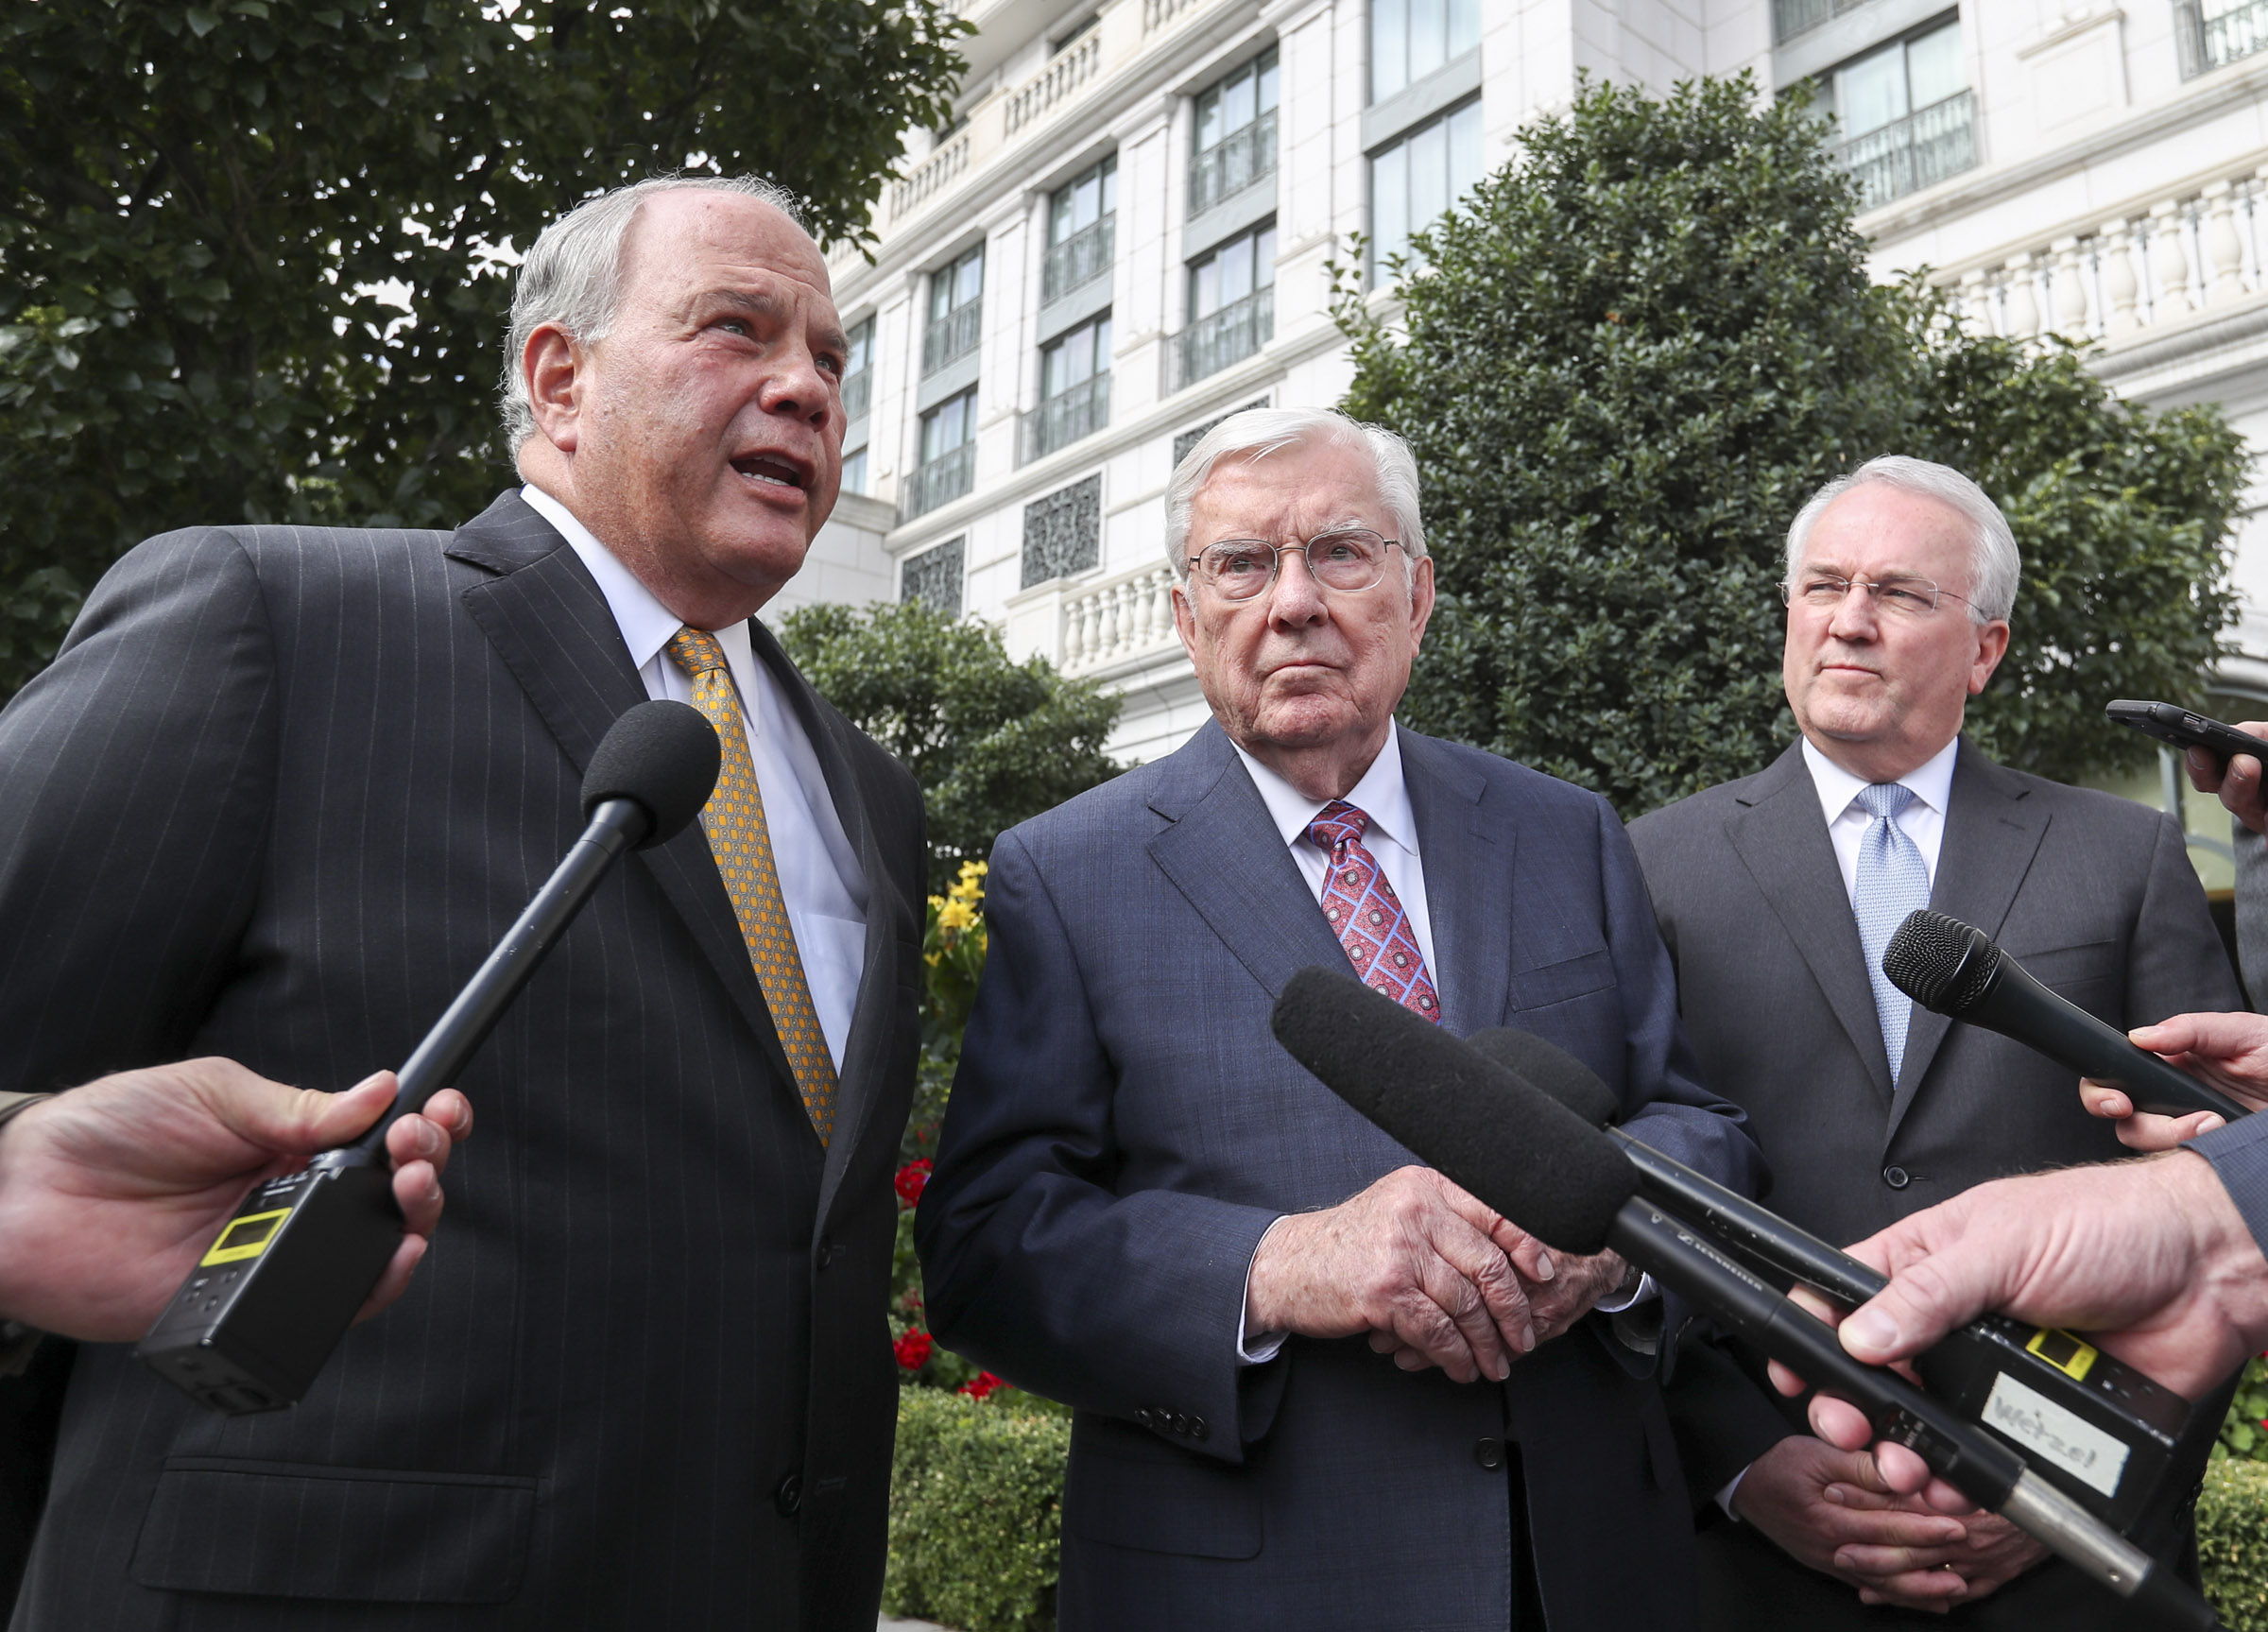 Elder Ronald A. Rasband, a member of the Quorum of the Twelve Apostles, left, speaks as President M. Russell Ballard, acting president of the Quorum of the Twelve Apostles, center, and Elder Jack N. Gerard, a General Authority Seventy, right, listen following a meeting with Vice President Mike Pence at the Grand America Hotel in Salt Lake City on Thursday, Aug. 22, 2019.